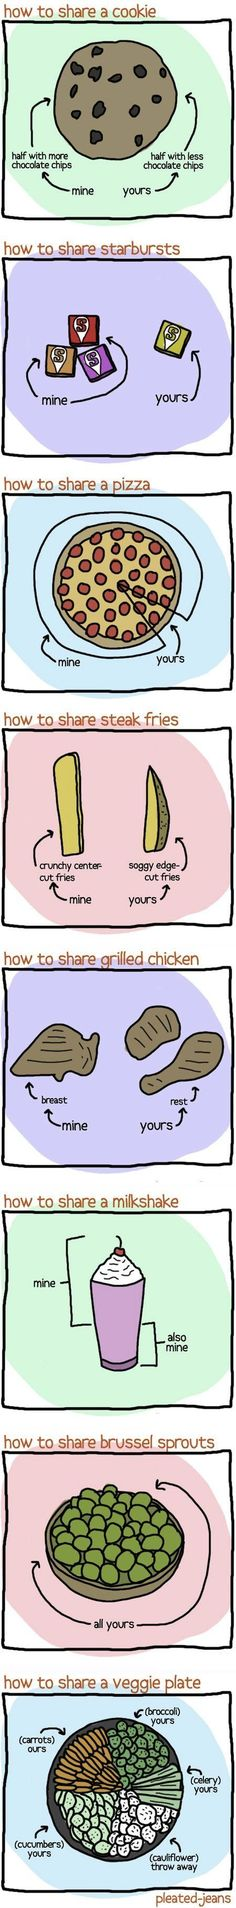 how to share food